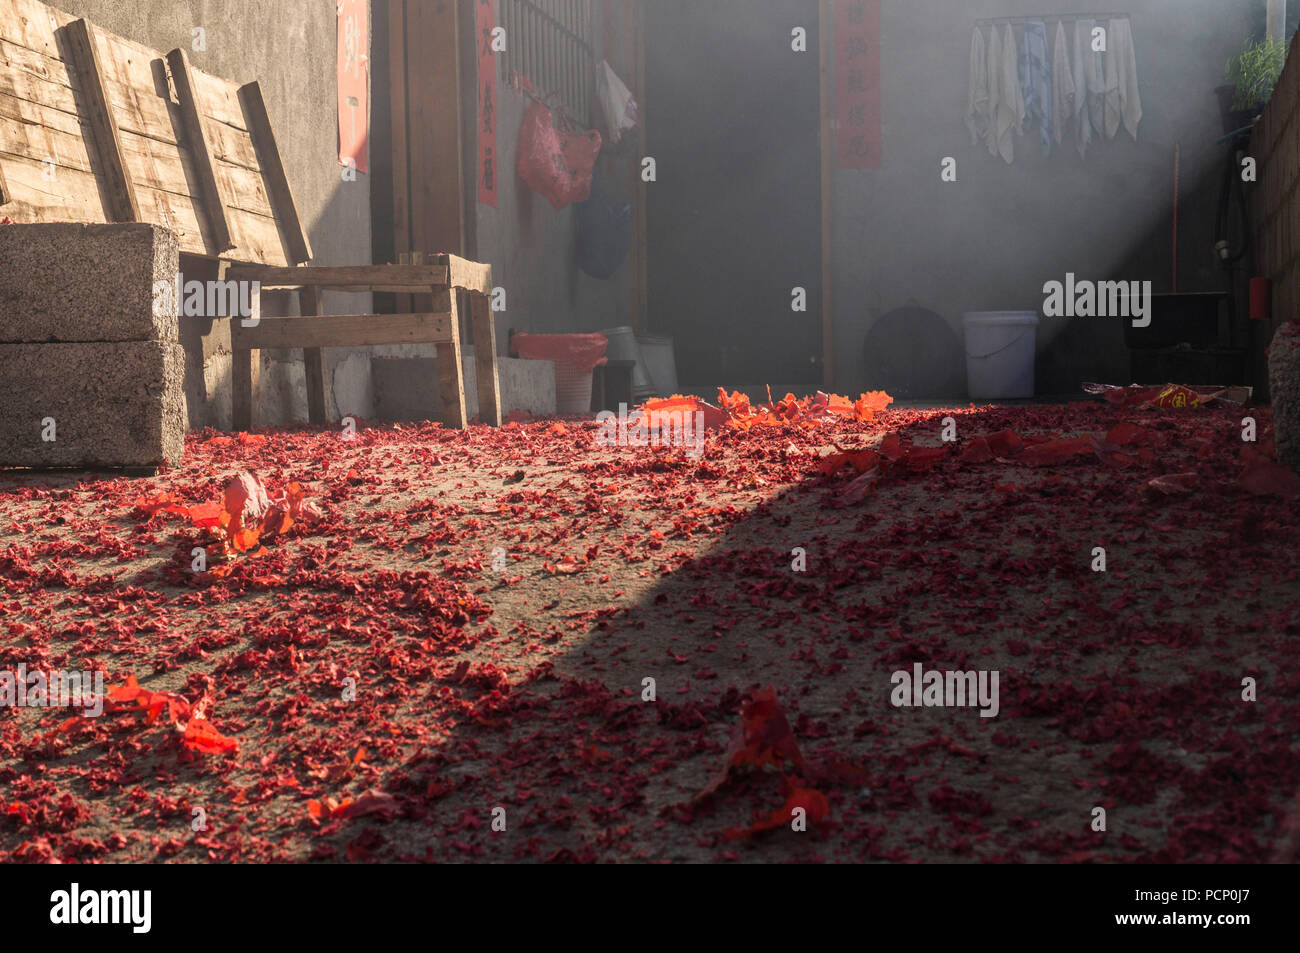 The morning after Chinese New Year - Stock Image